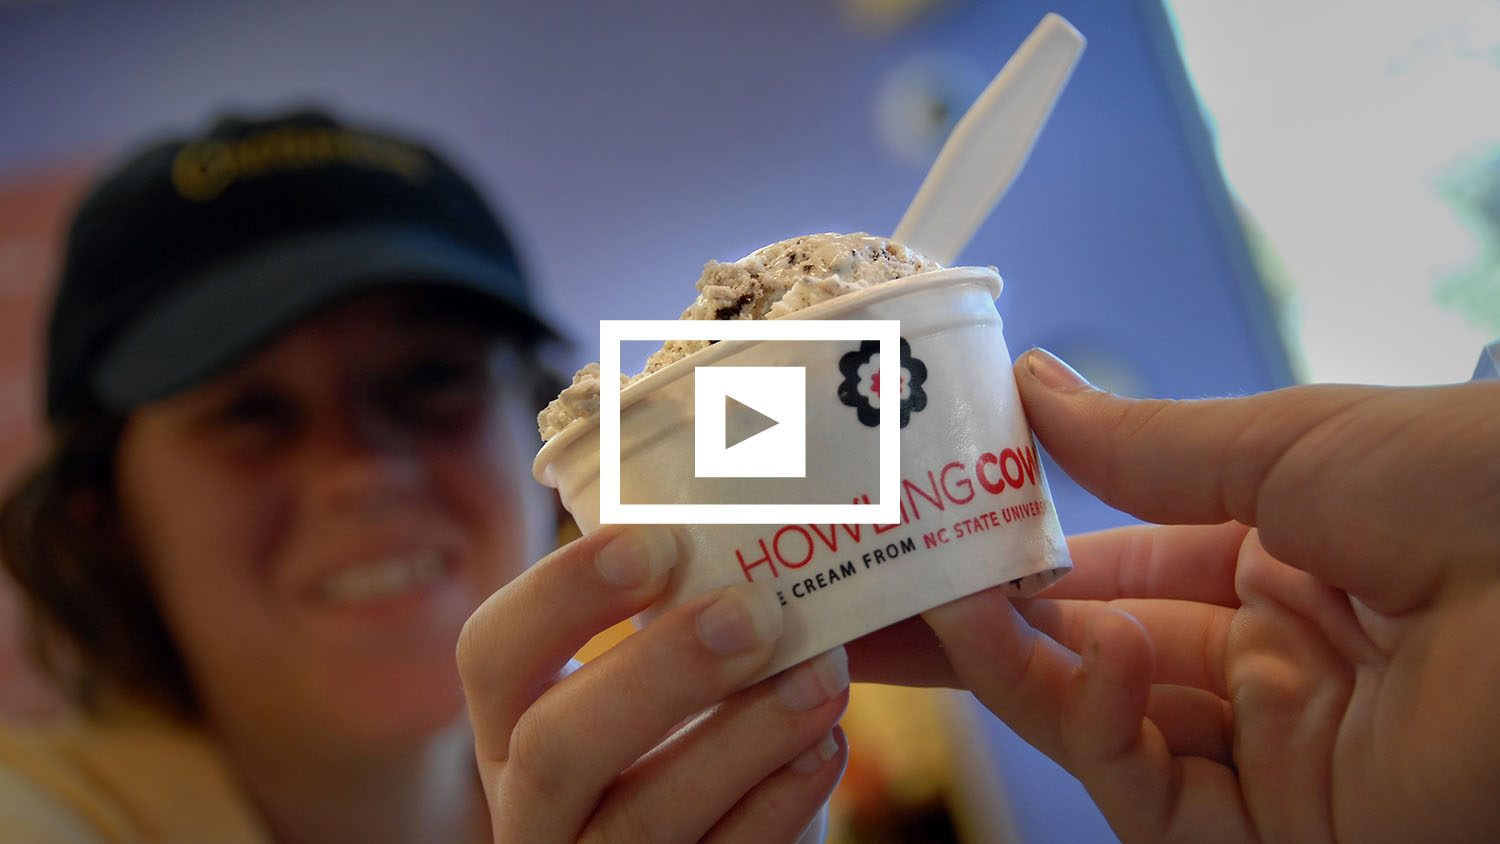 Howling Cow ice cream